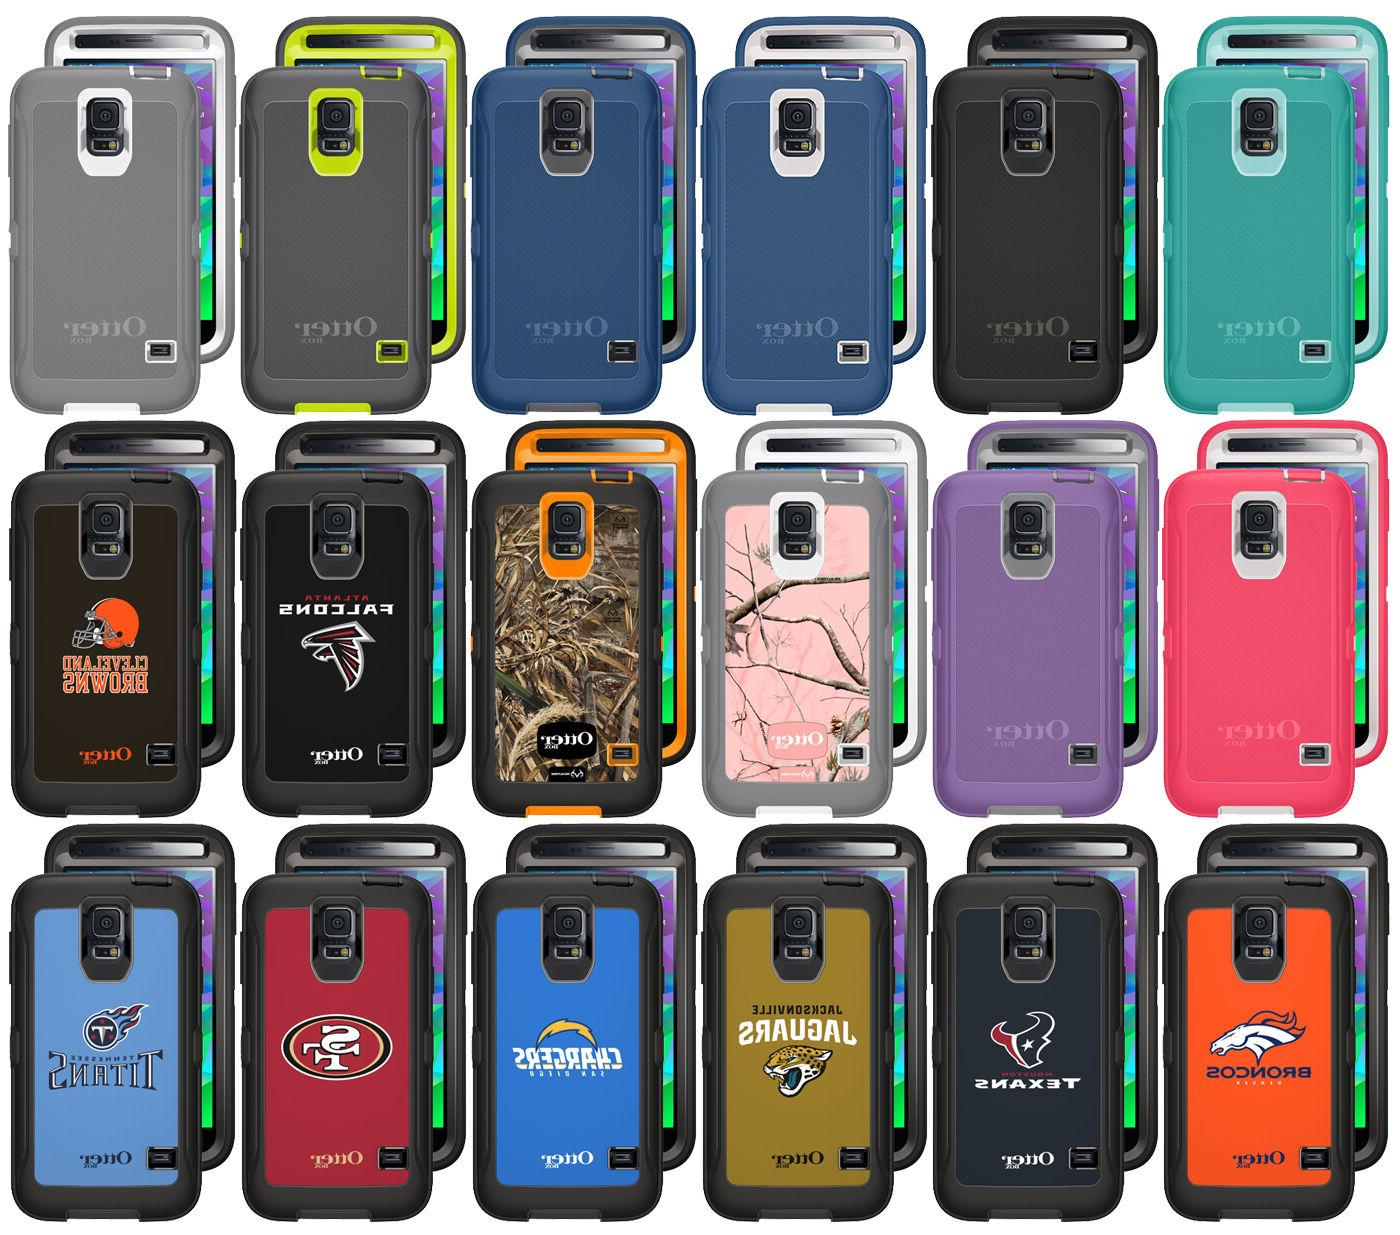 OEM Original Otterbox Defender Case for Samsung Galaxy S5 -